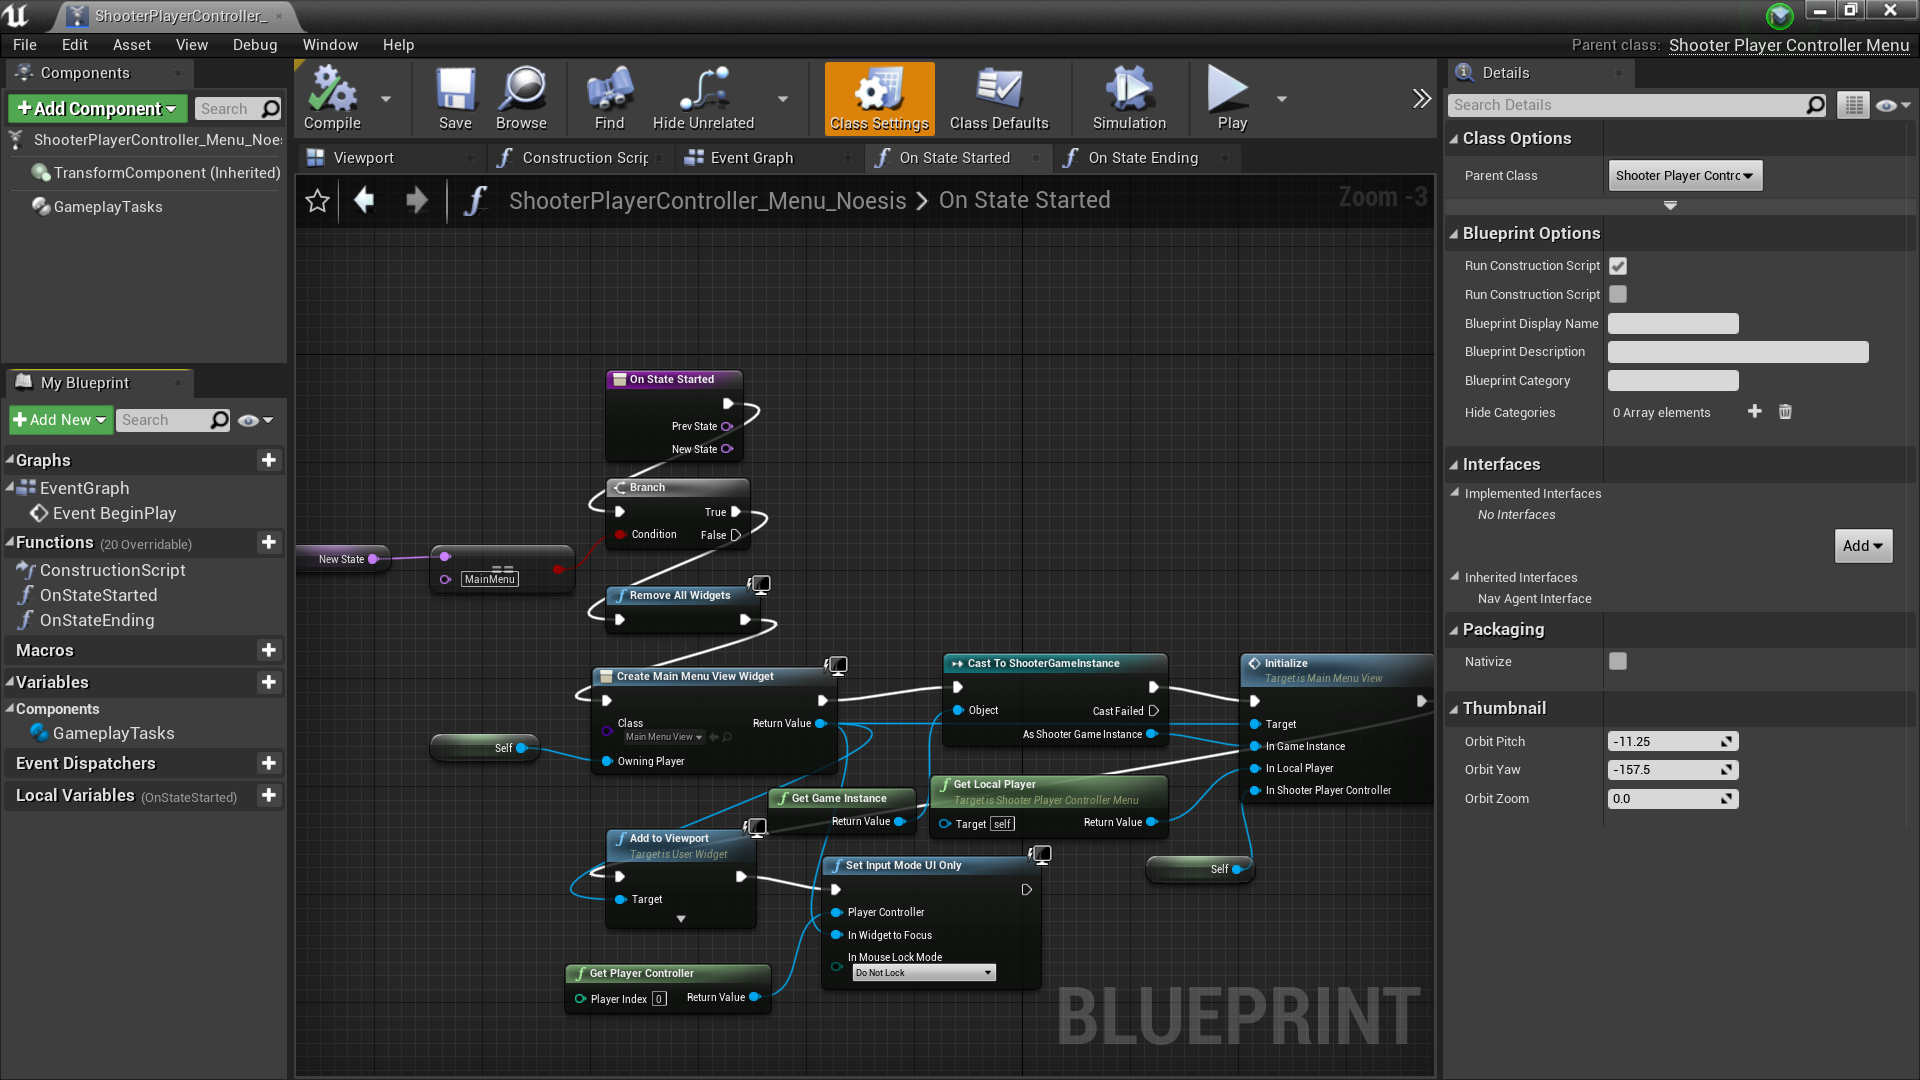 Blueprint'/Game/Blueprints/Noesis/ShooterPlayerController_Menu_Noesis.ShooterPlayerController_Menu_Noesis'